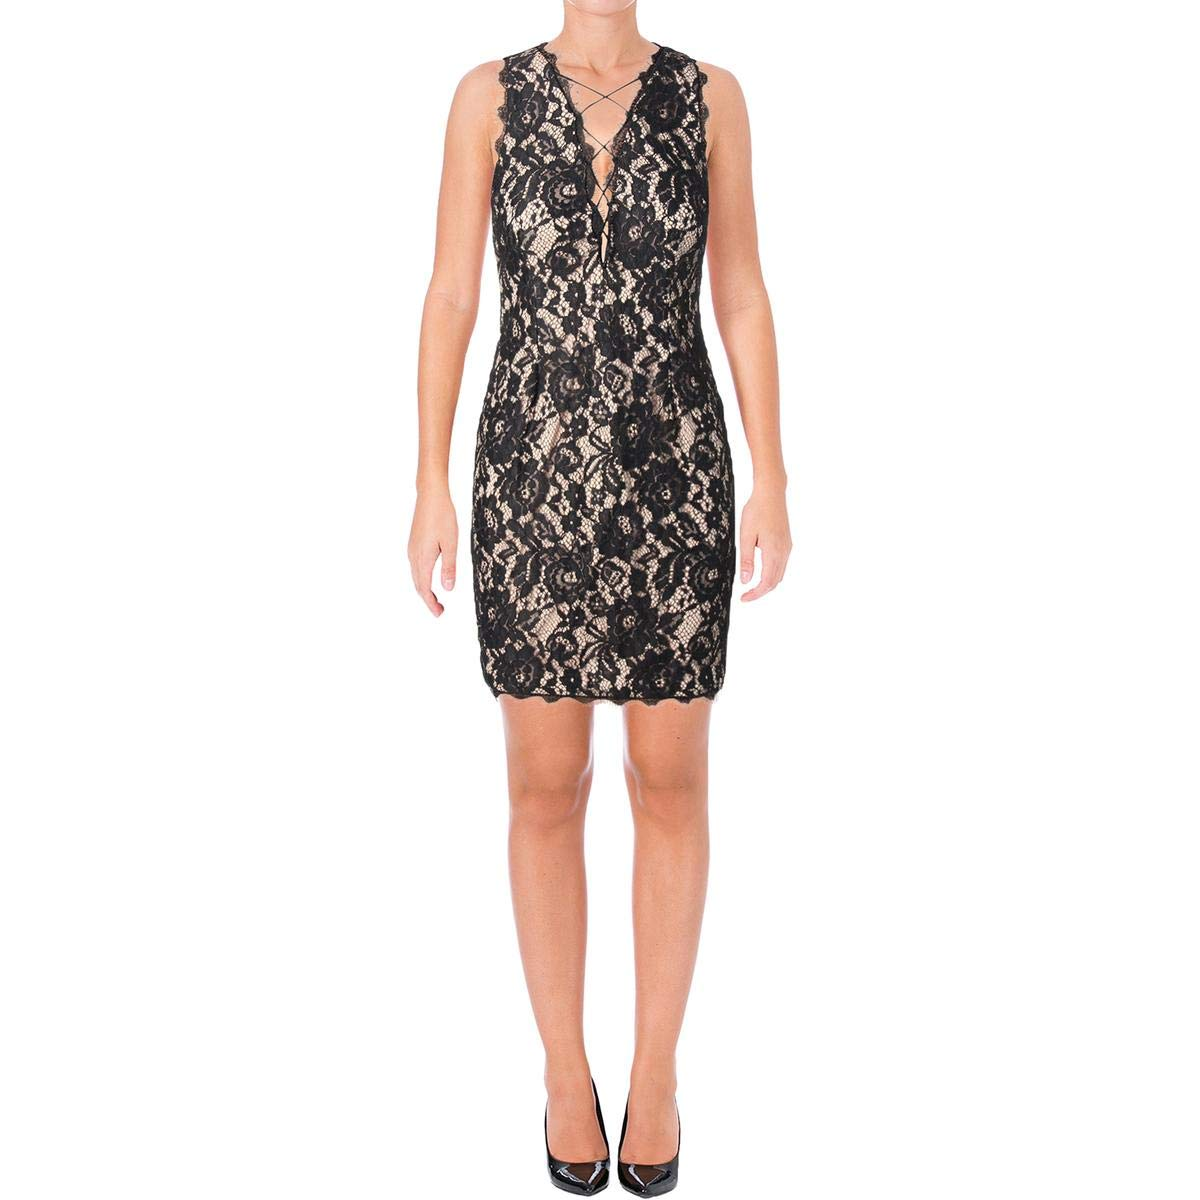 a8479fd77ba317 Aidan Mattox Womens Sleeveless Plunging Lace Cocktail Dress With Strapping  at Amazon Women s Clothing store